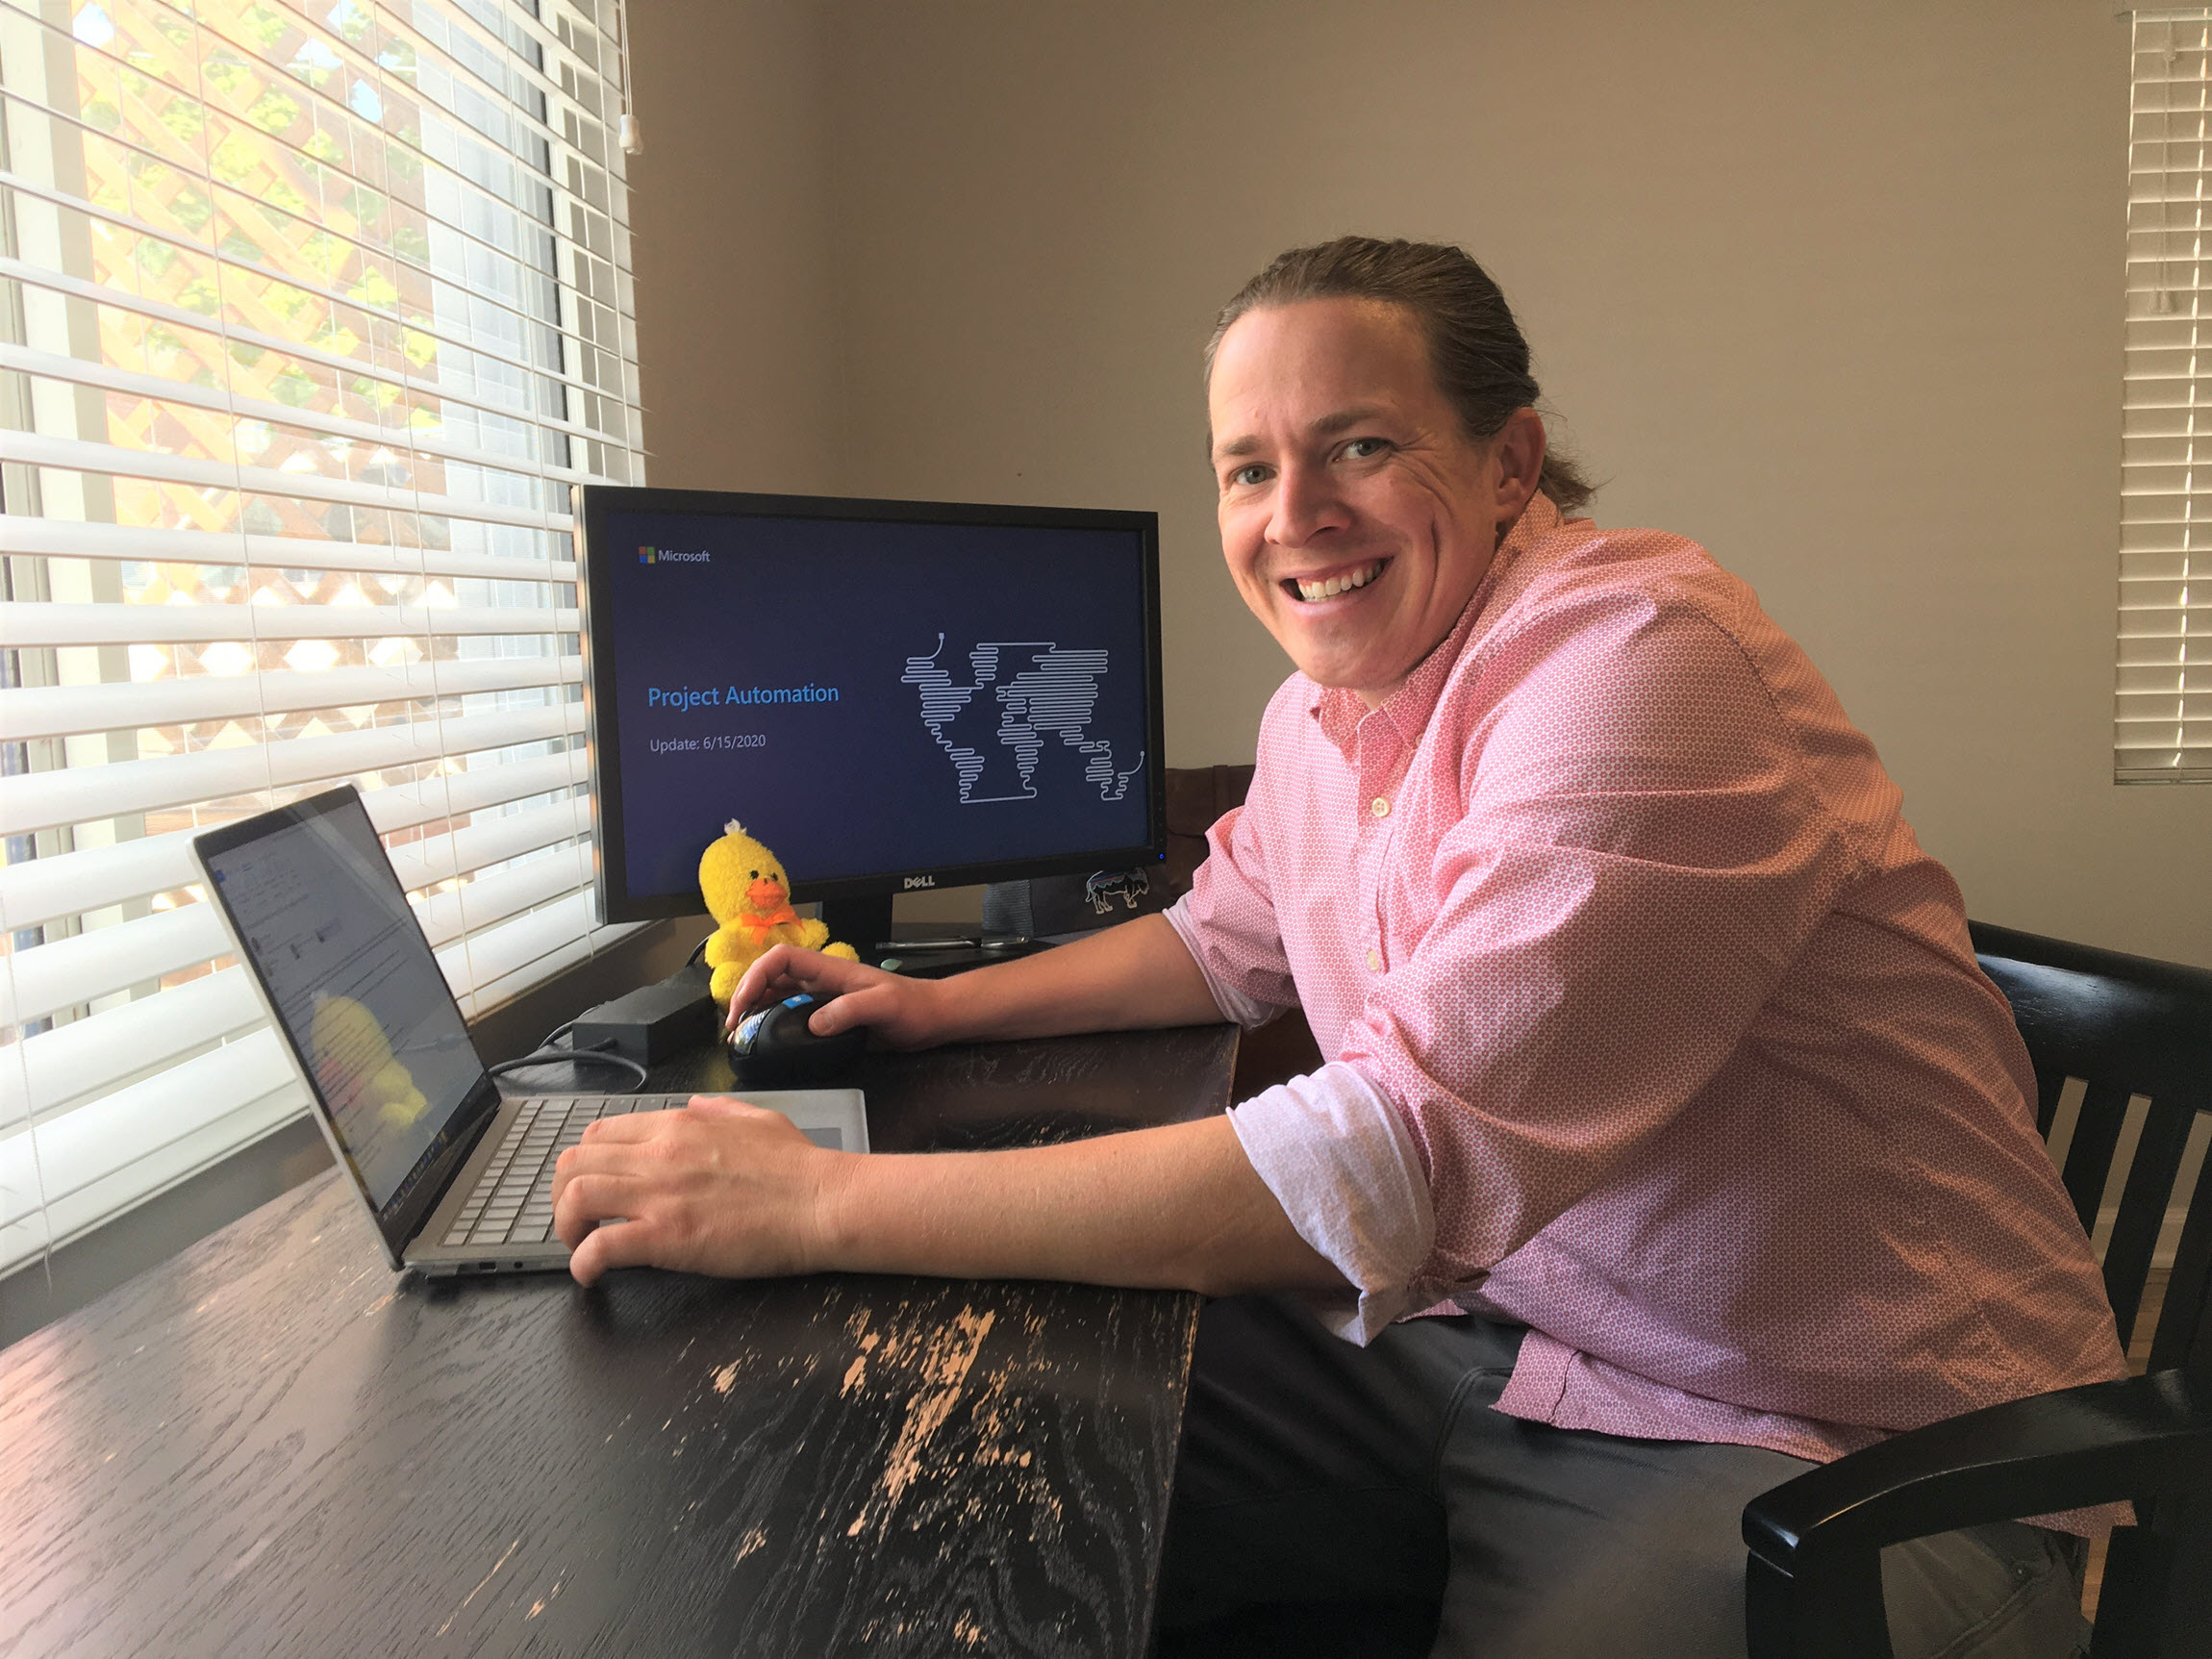 Jeff Cluff looks up and smiles from his desk in his home office.